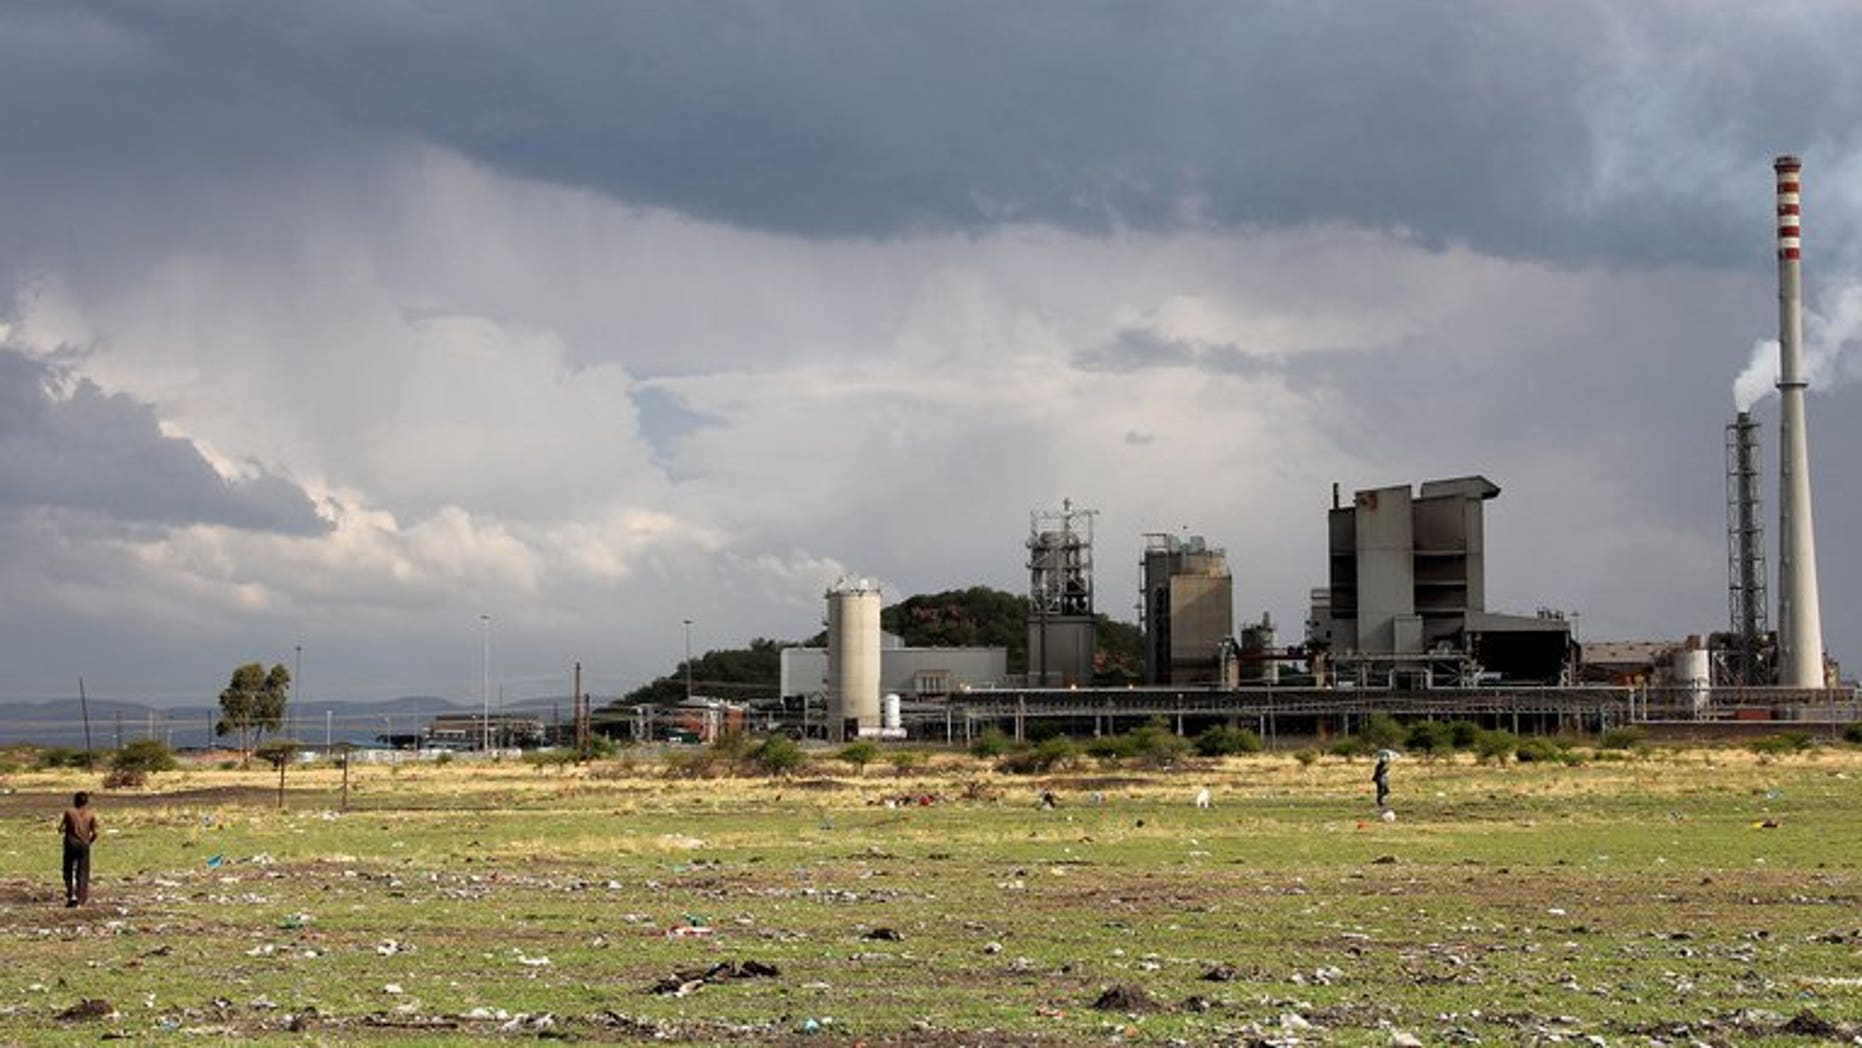 Part of the Lonmin platinum mine in Marikana, South Africa, pictured on October 30, 2012. A worker at the mine has been shot dead, police said, in the latest violence to hit the country's restive northwestern platinum belt.